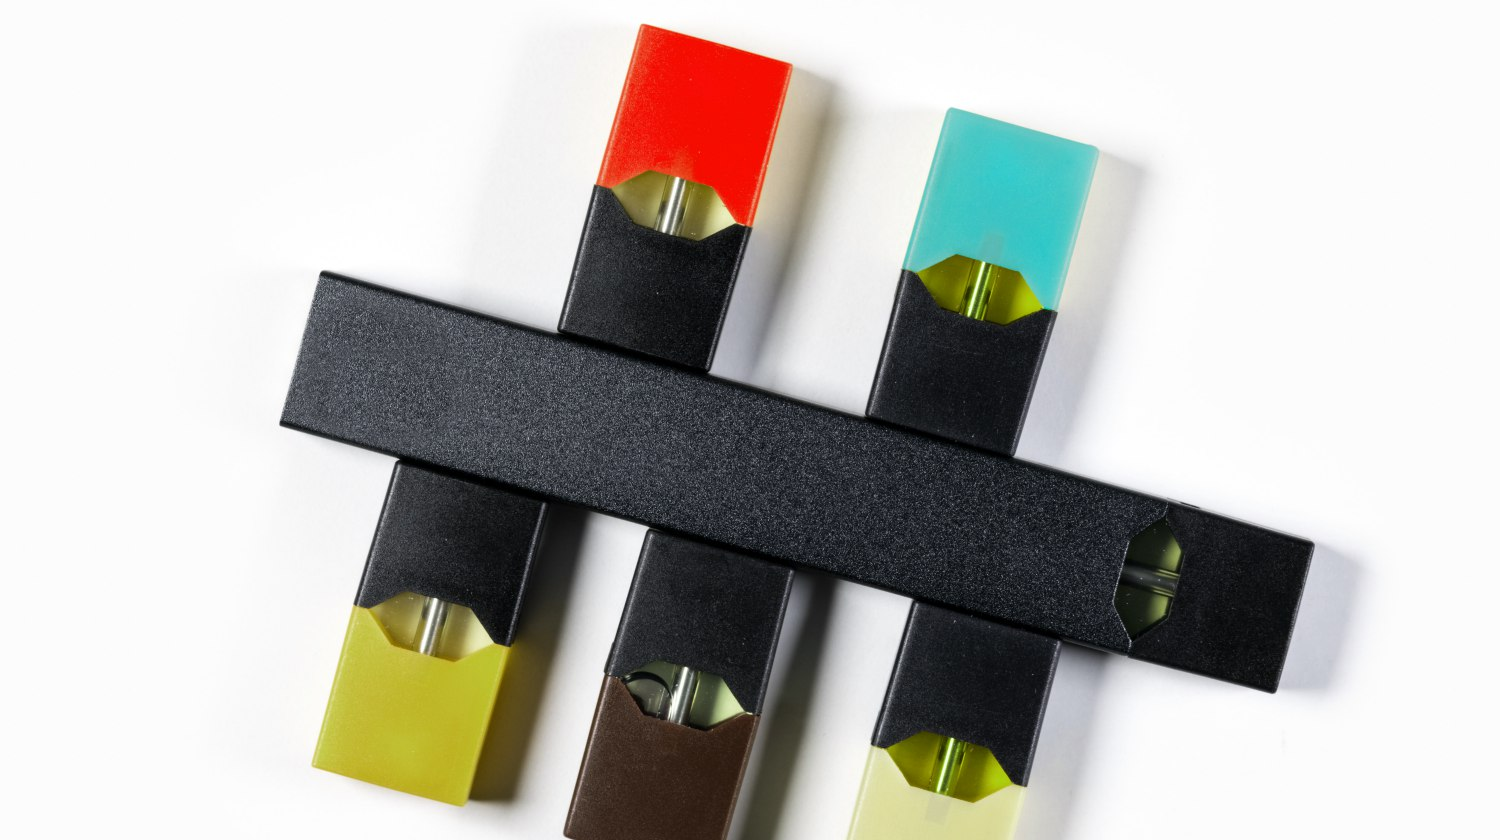 Feature | juul ecigarette | Which Company Is Behind the Juul Stock? | Inside Your IRA | juul labs inc